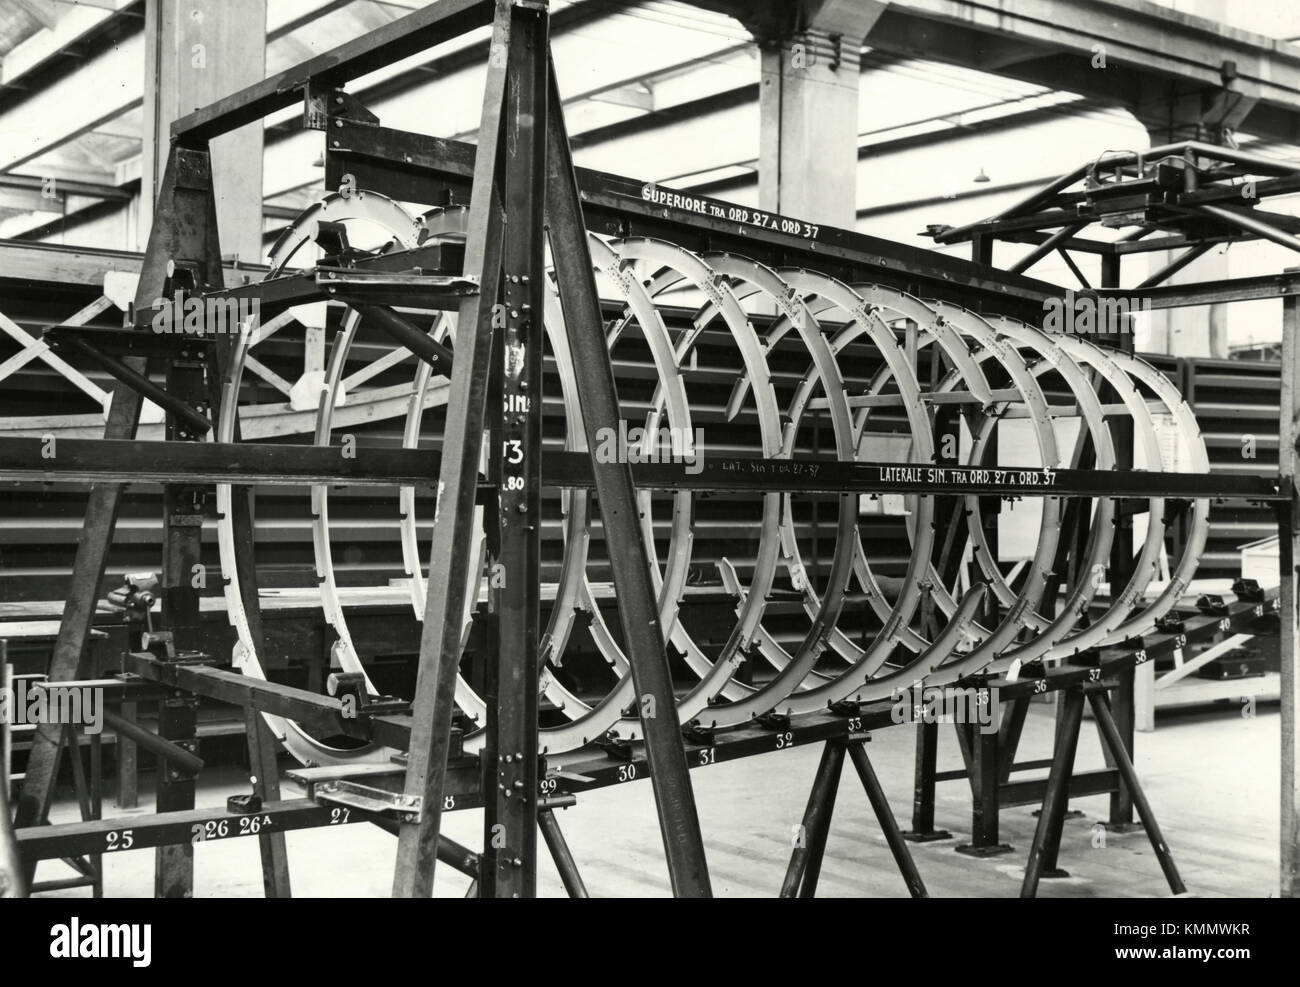 Building the fuselage of the aircraft FIAT G.80, Italy 1950s - Stock Image